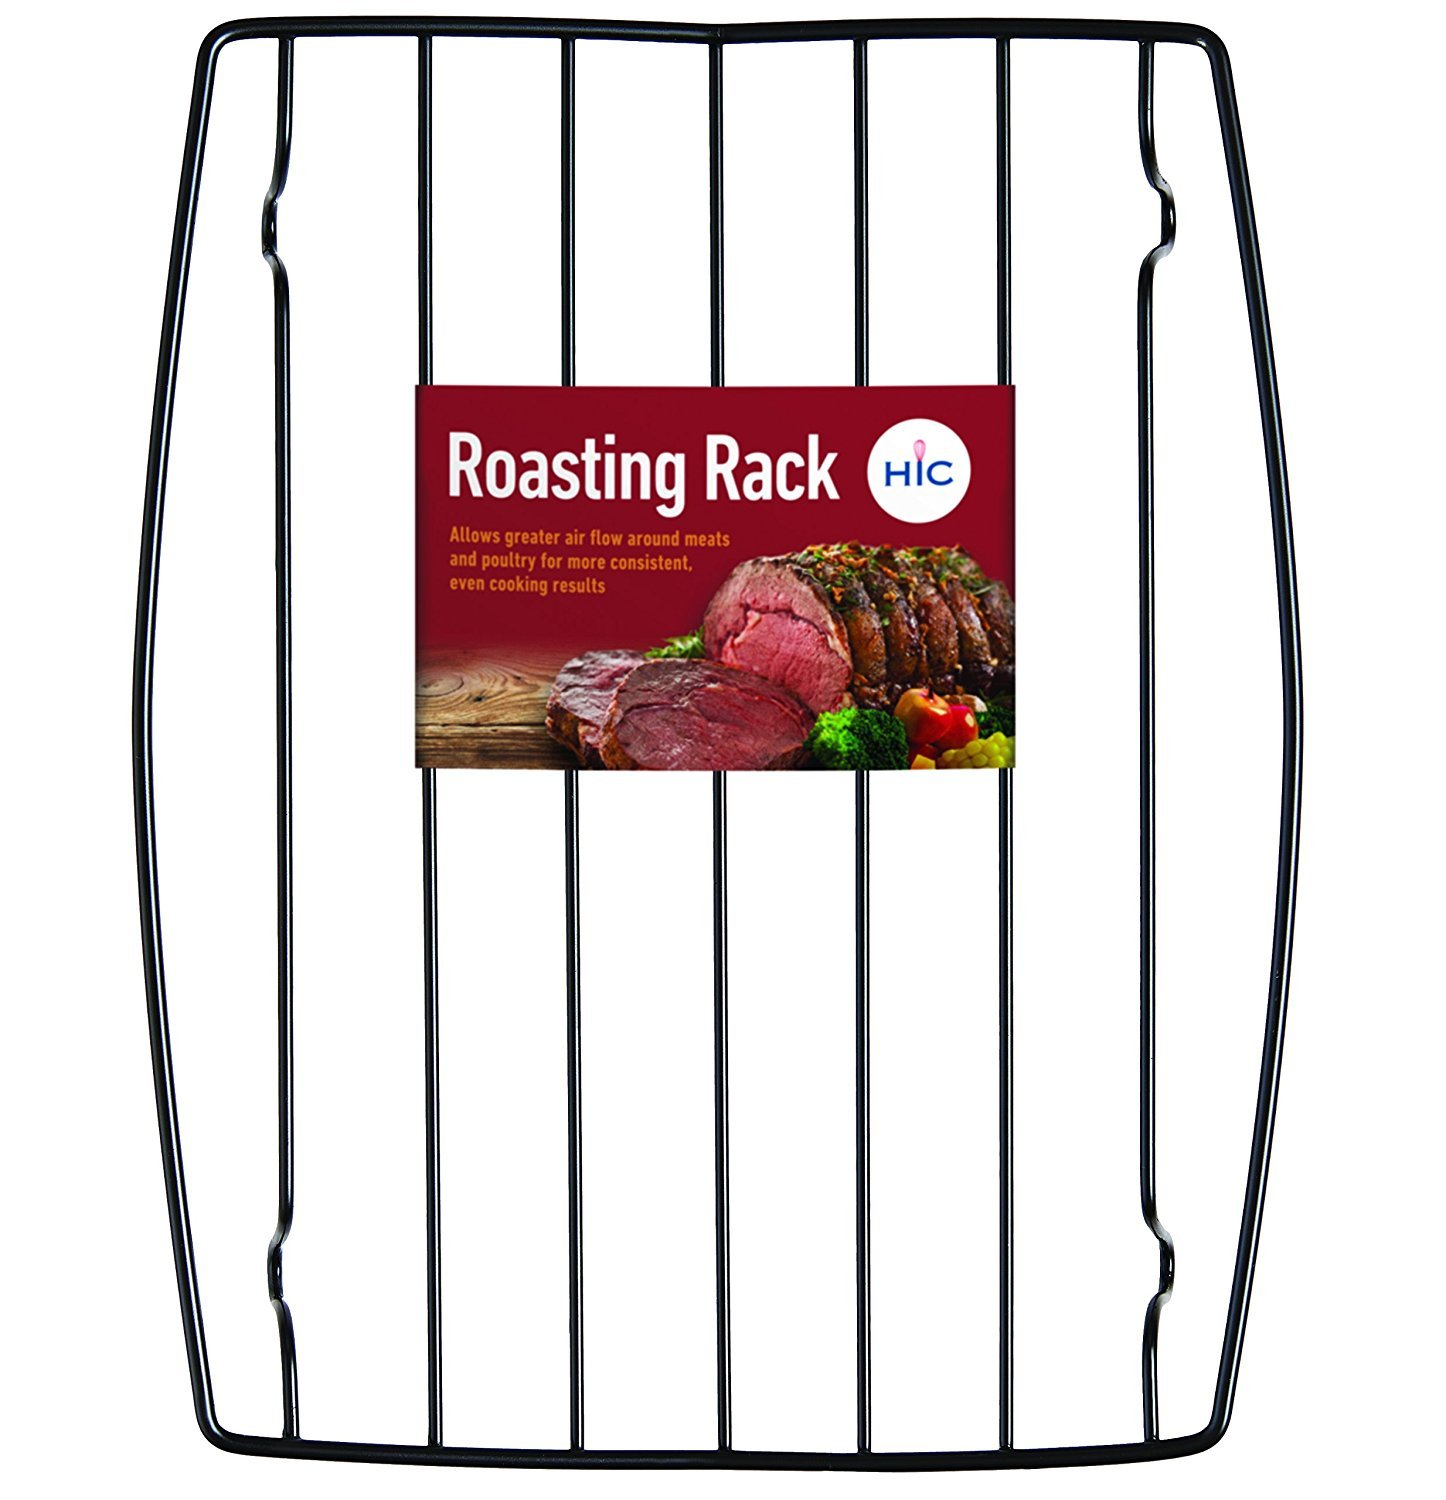 HIC Harold Import Co. 43183 Adjustable Wire Roasting Rack, Nonstick Harold Imports NorPro